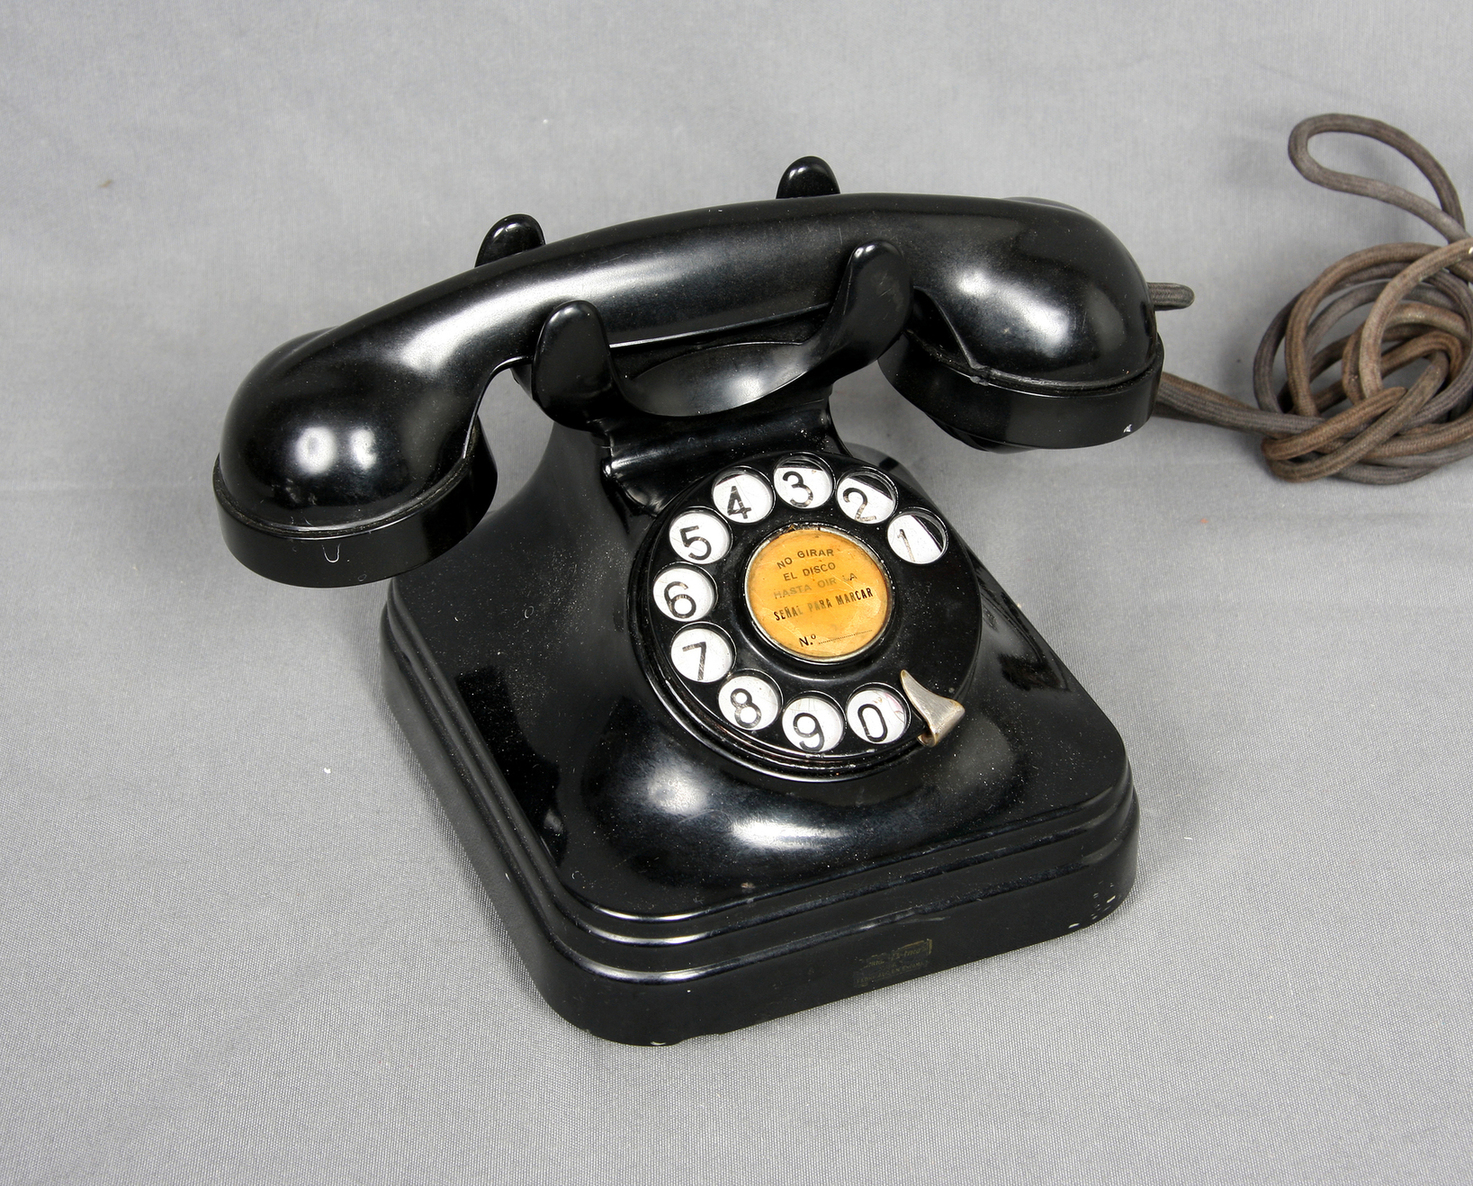 An Antique Standard Electrica Telephone-